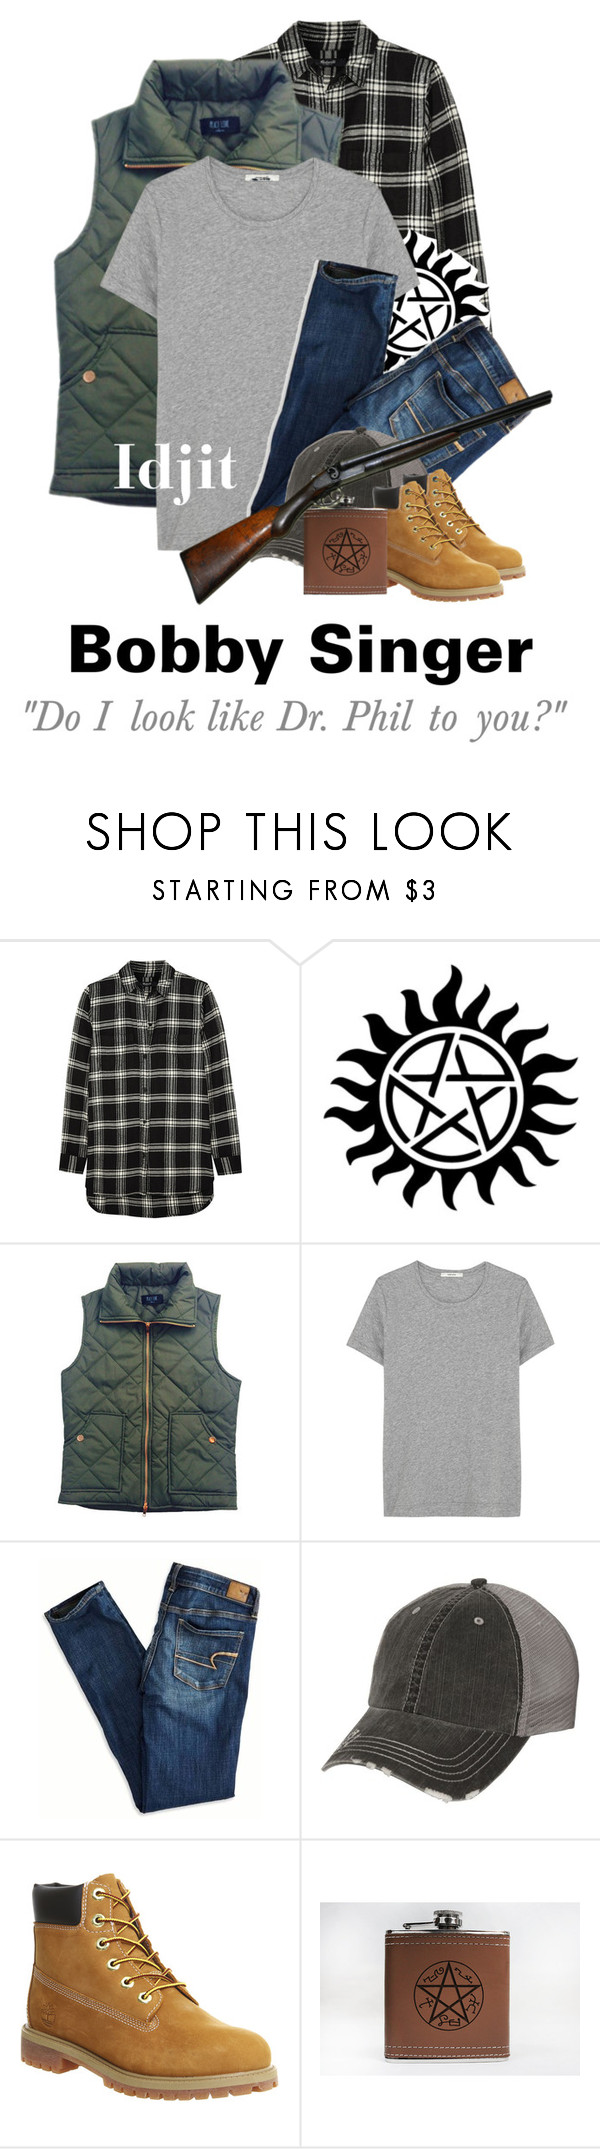 """""""Day 13: Favorite Bobby Scene"""" by parisinblackandwhite ❤ liked on Polyvore featuring Madewell, ADAM, American Eagle Outfitters and Timberland"""